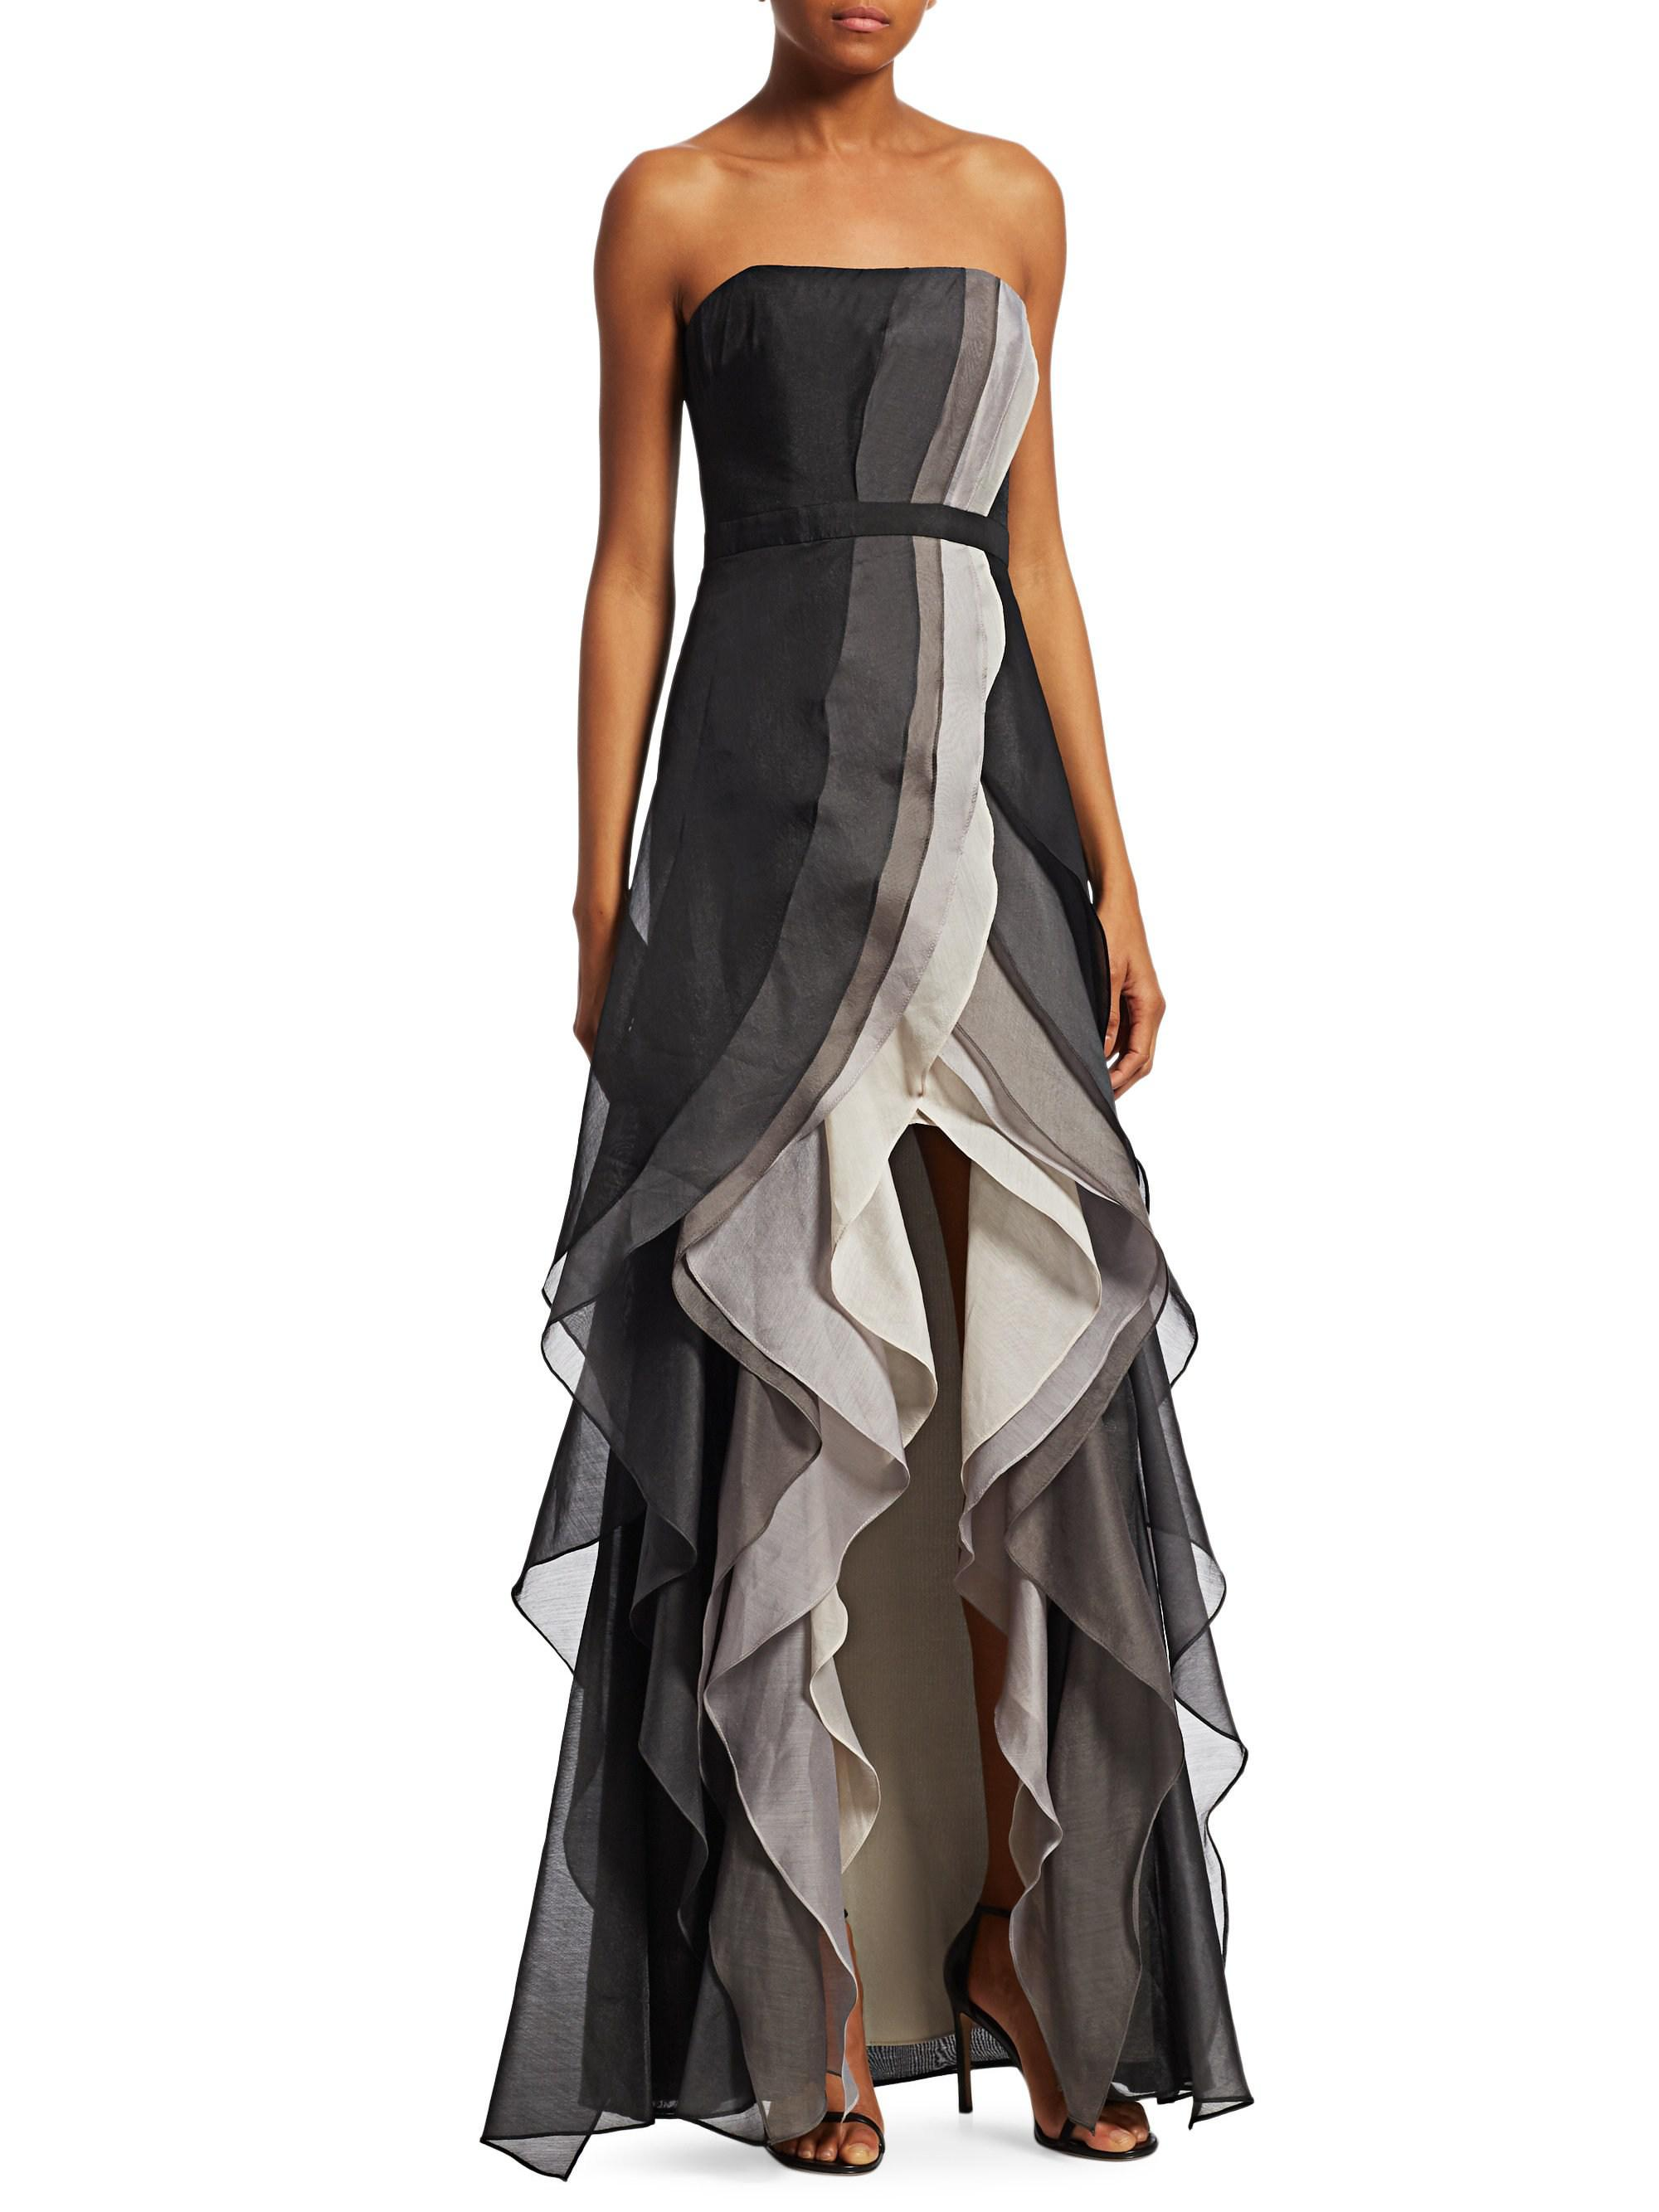 Lyst - Halston Heritage Ombre Tiered Ruffled Evening Gown in Black